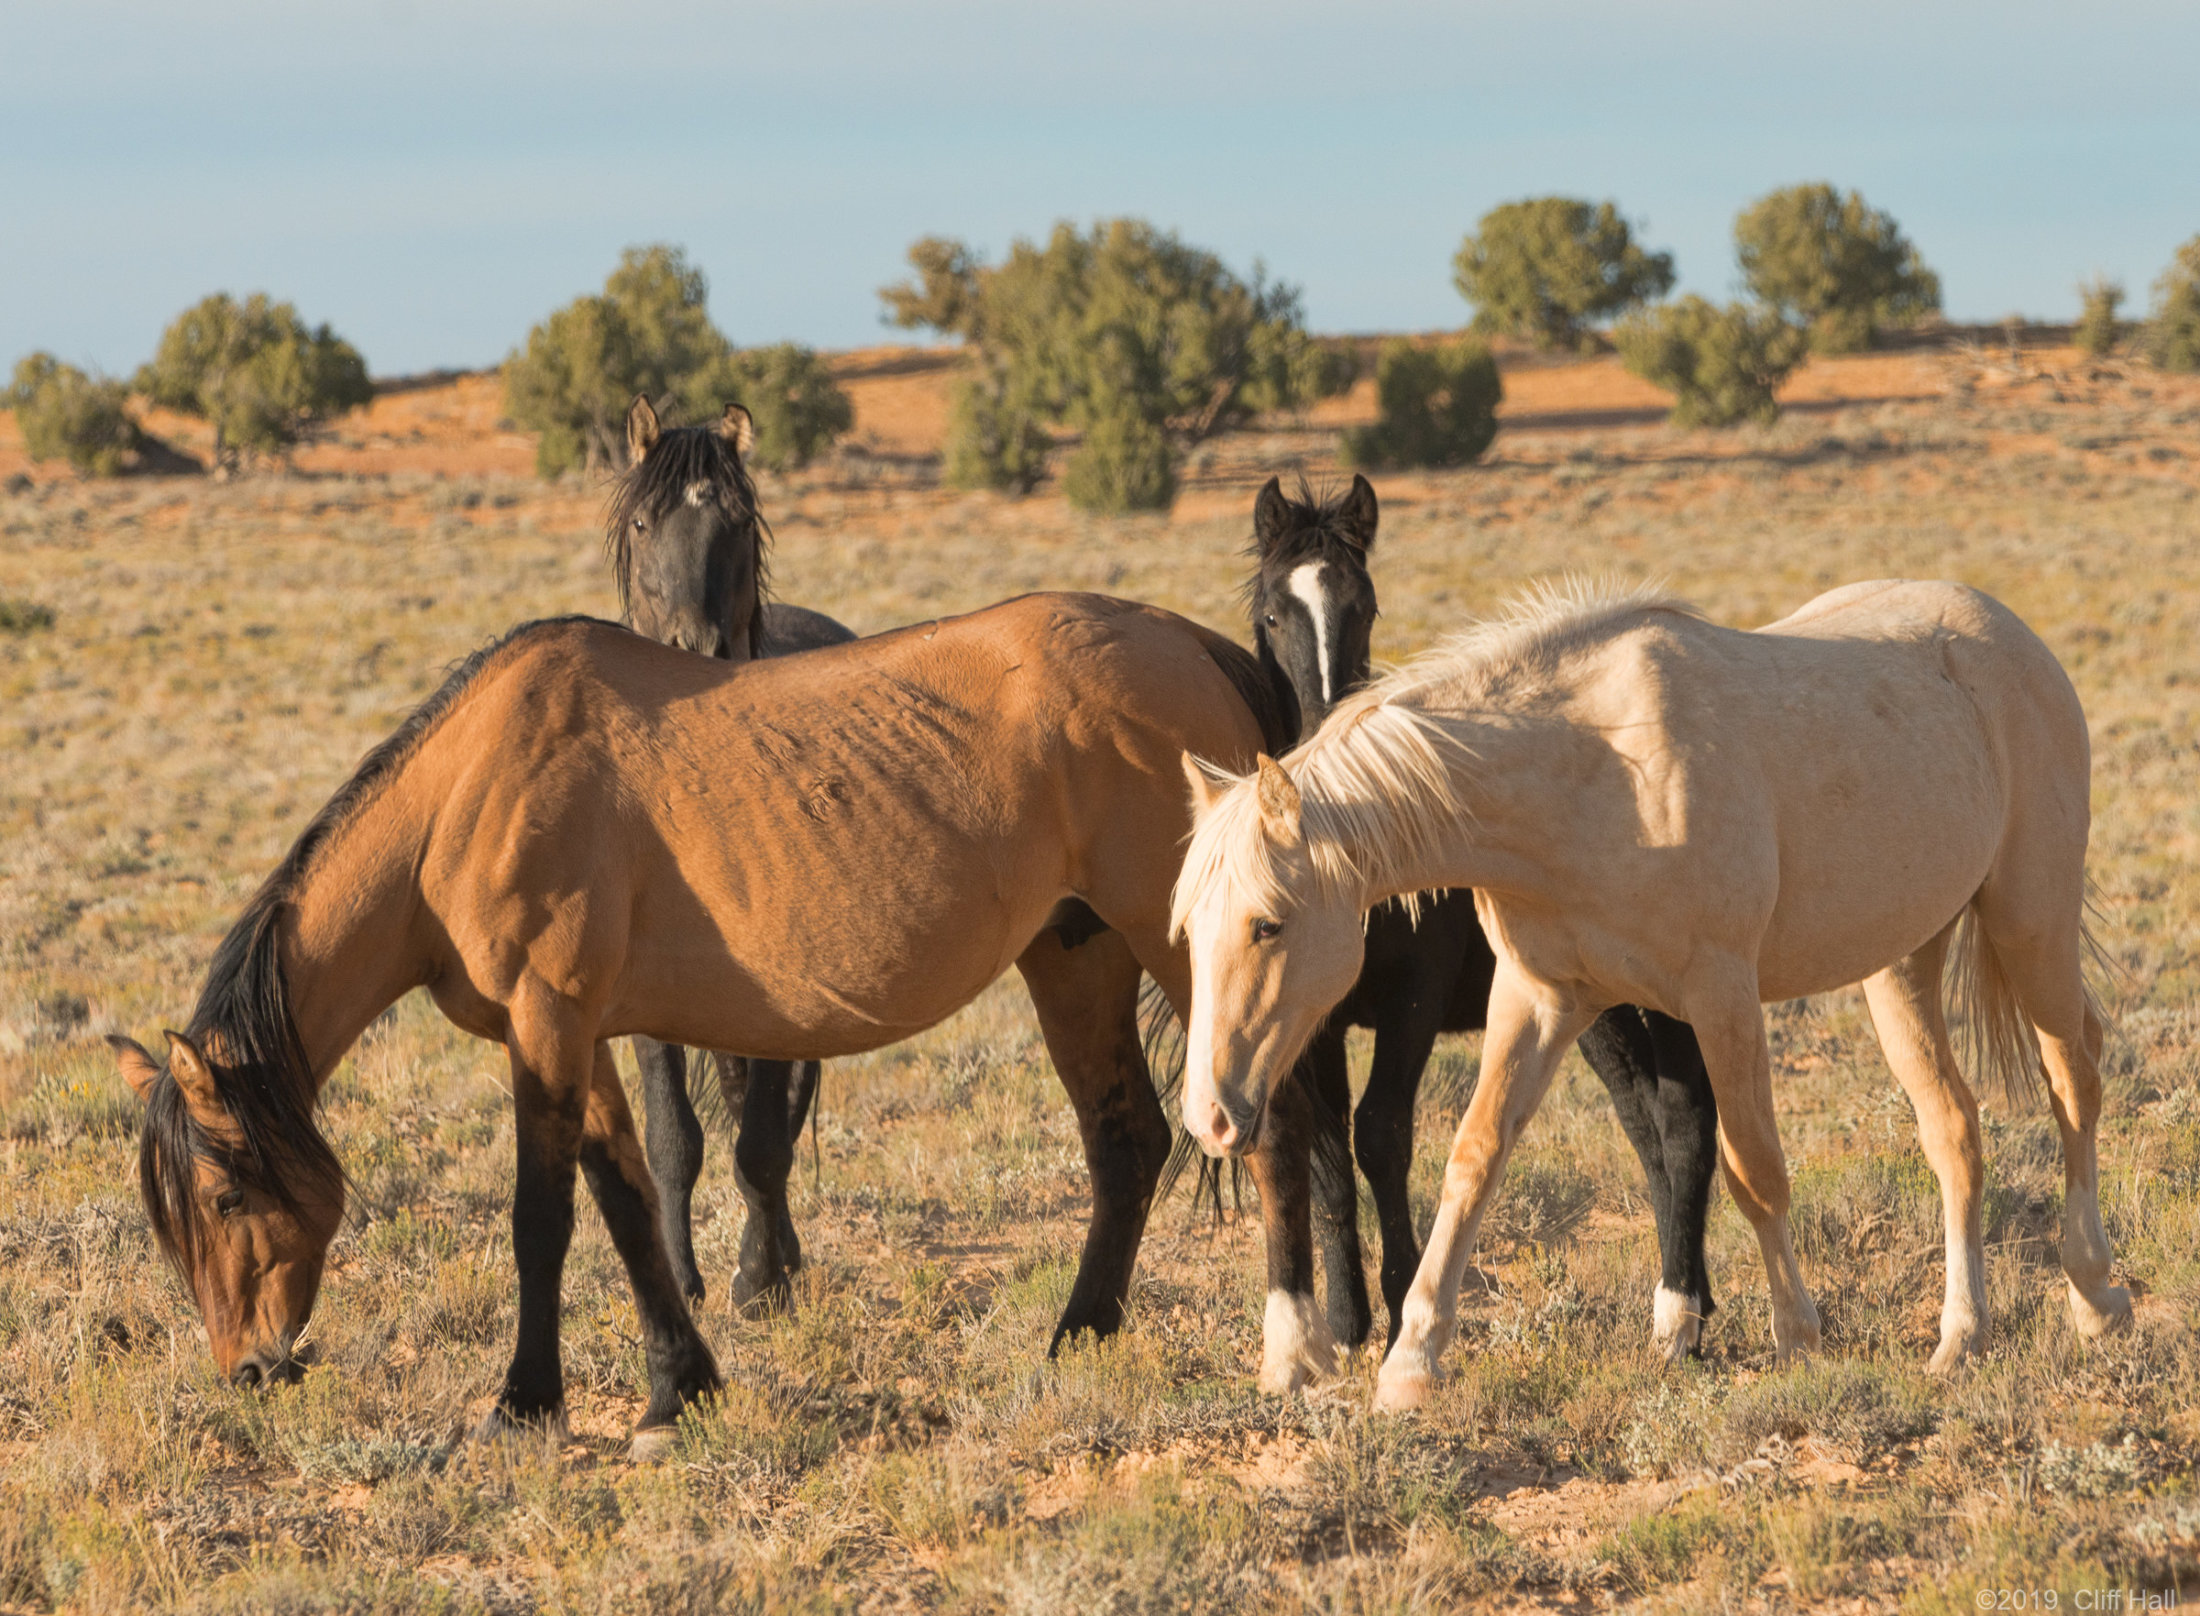 Wild Horses, wary of people